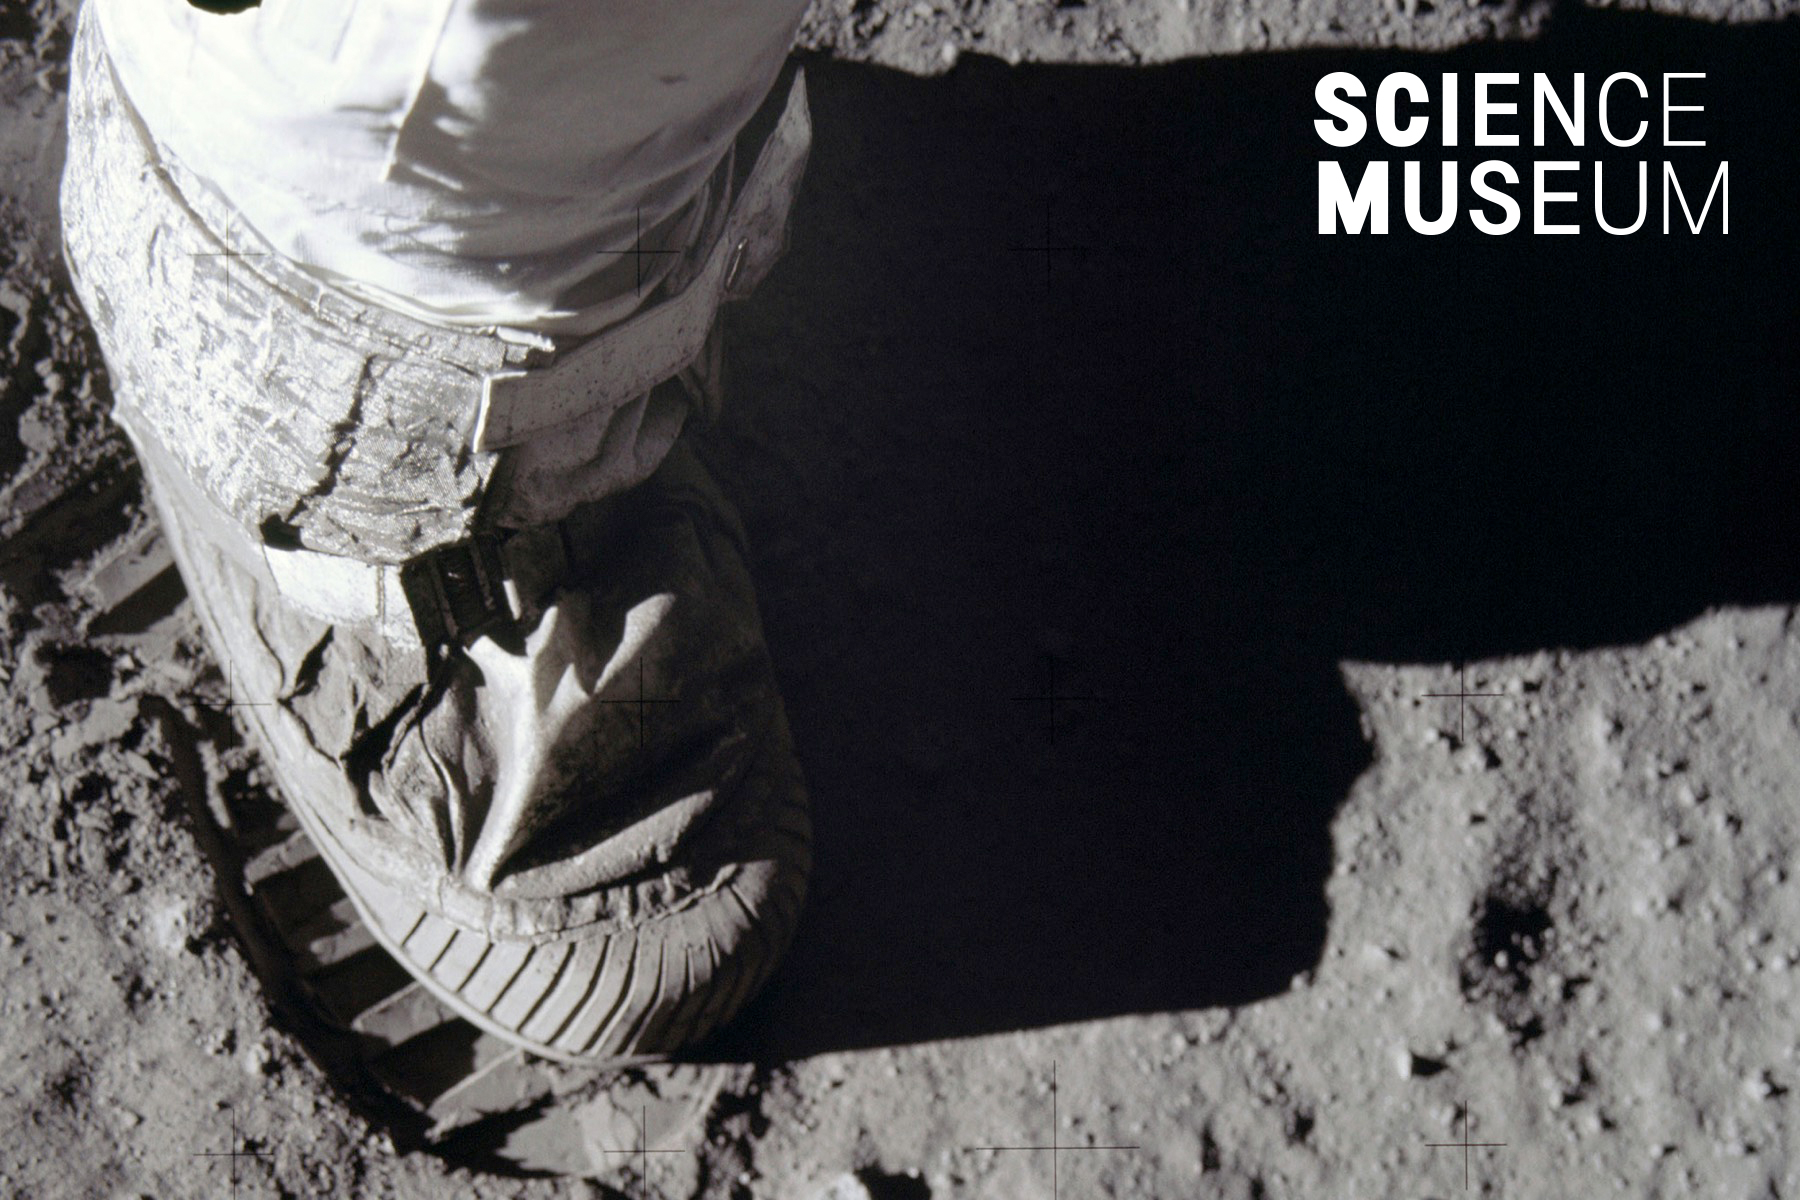 Black and white photograph of a foot in a spacesuit making a footprint on the surface of the Moon (NASA)